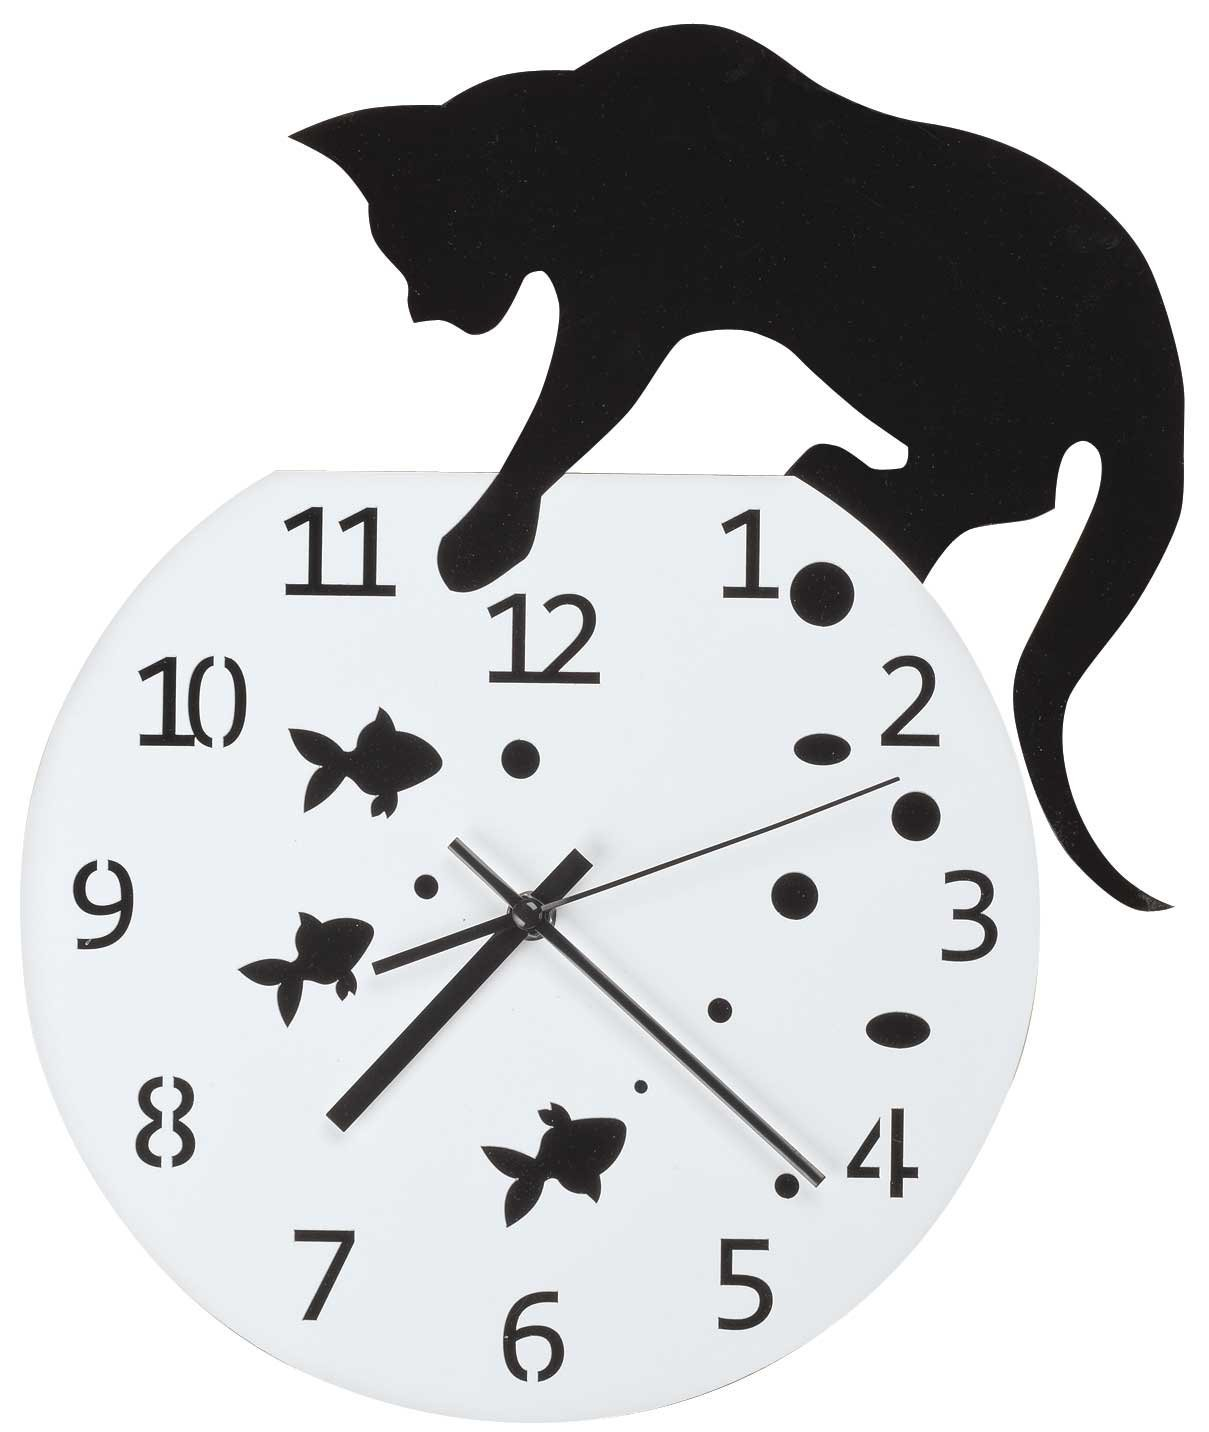 WalterDrake Fishbowl Cat Clock